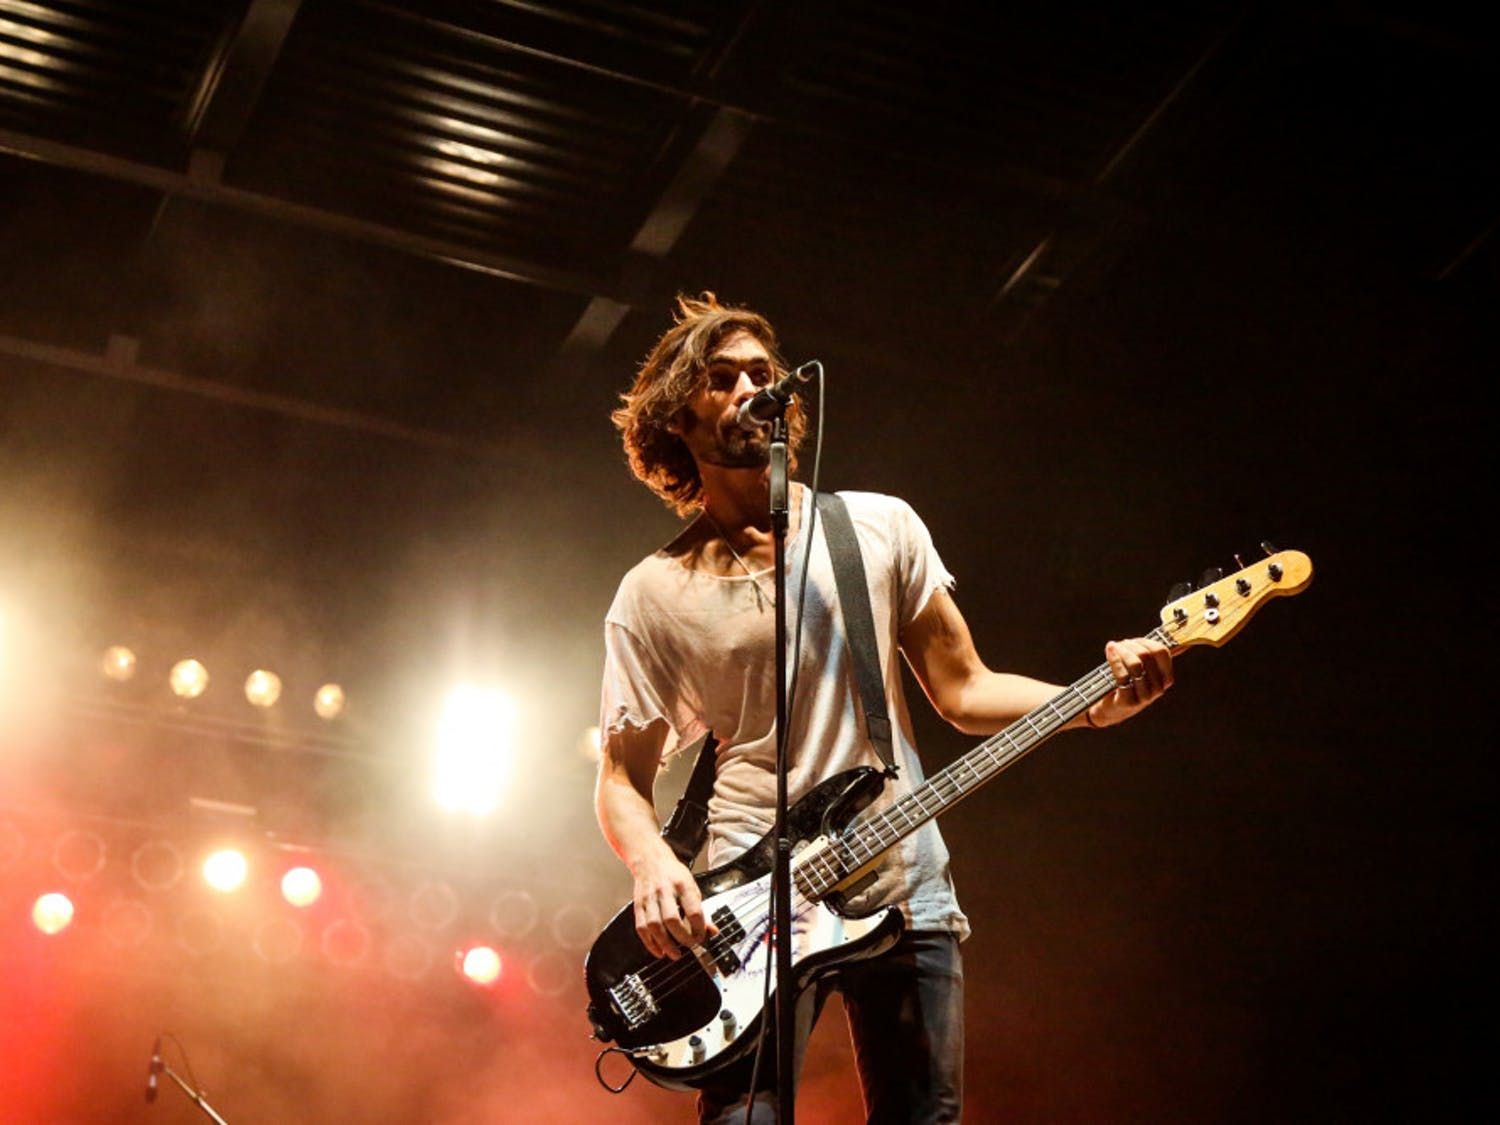 """Tyson Ritter, the lead singer of The All-American Rejects, performs during the free """"Rock the Vote"""" concert on Friday evening on Flavet Field."""